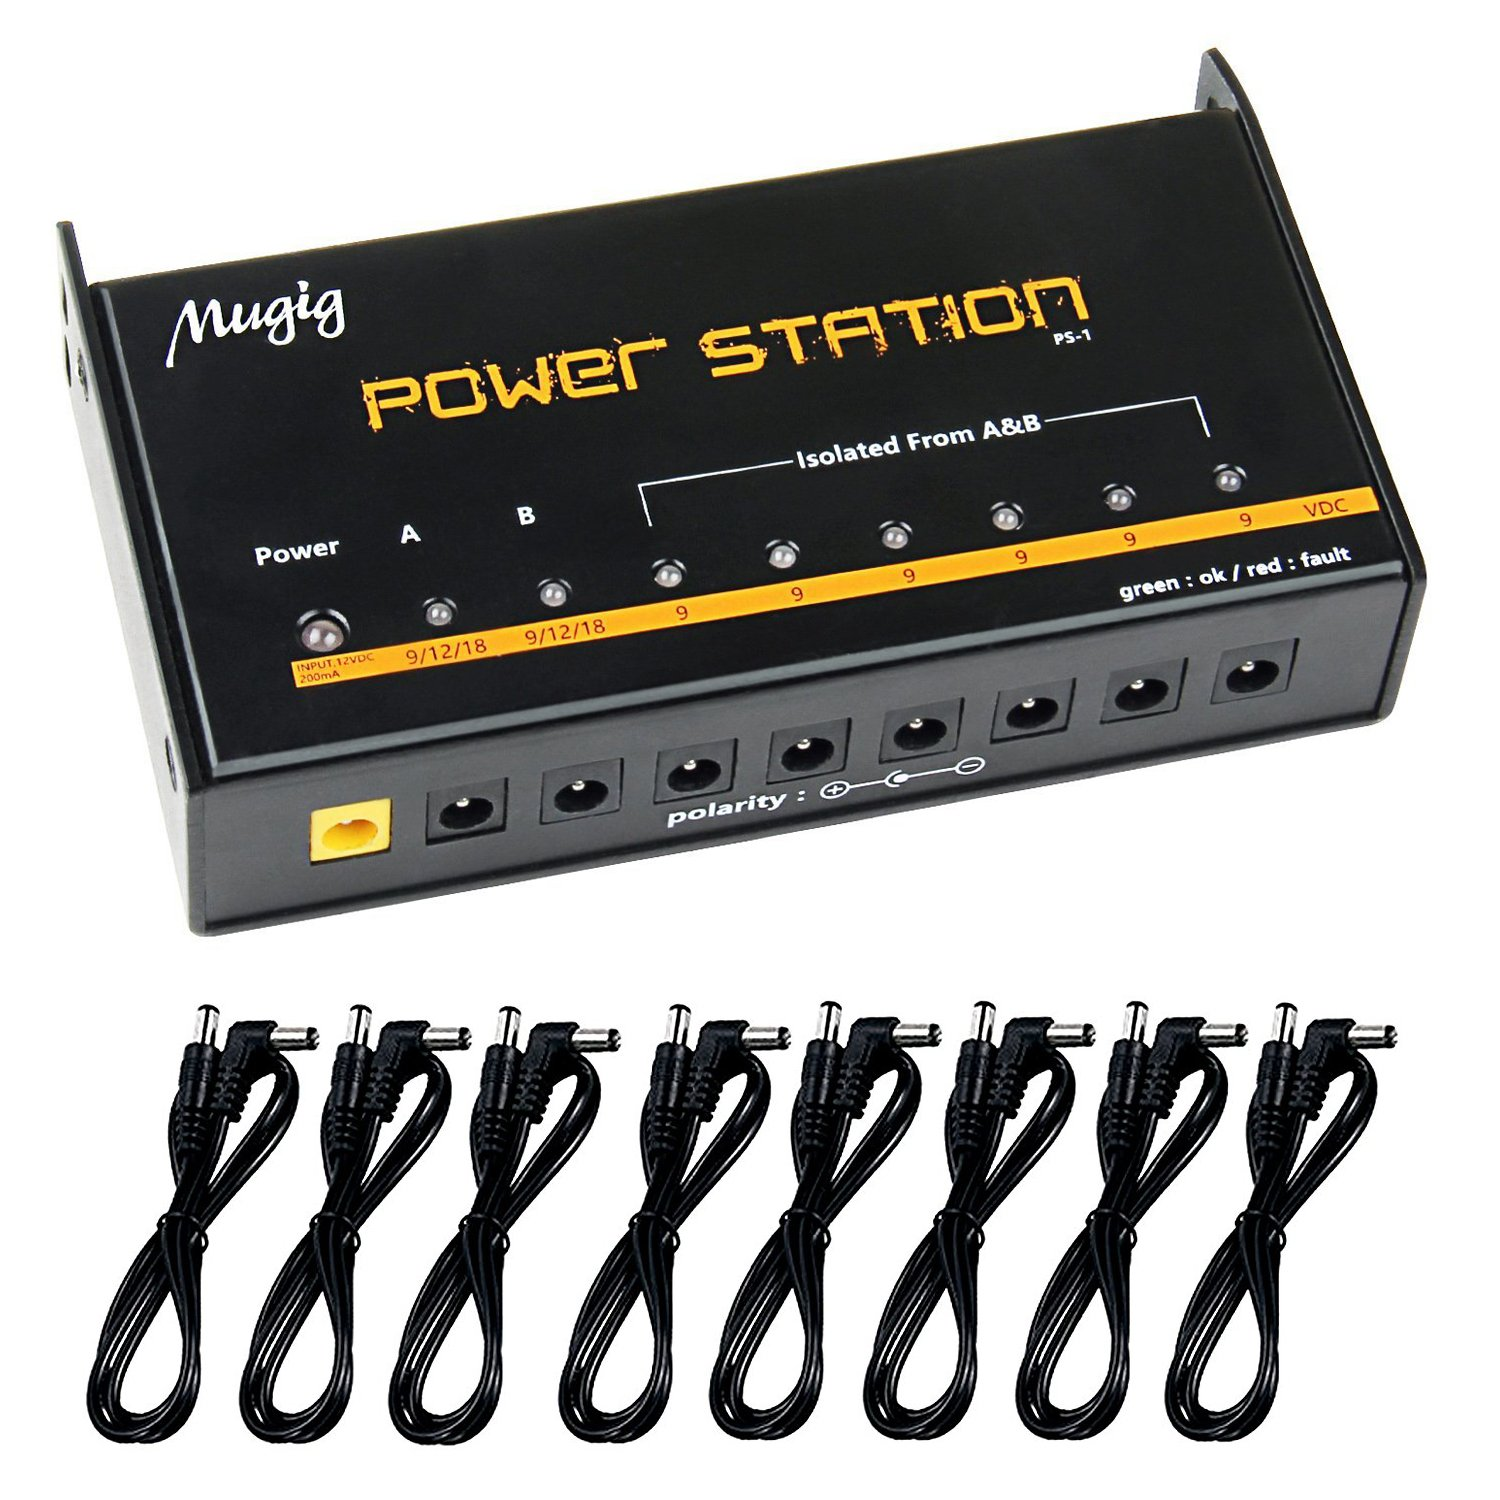 Mugig Guitar Pedal Power Supply 8 Outputs for 9V / 12V / 18V Effect Pedal Power Station with Isolated Short Circuit and Over Current Protection